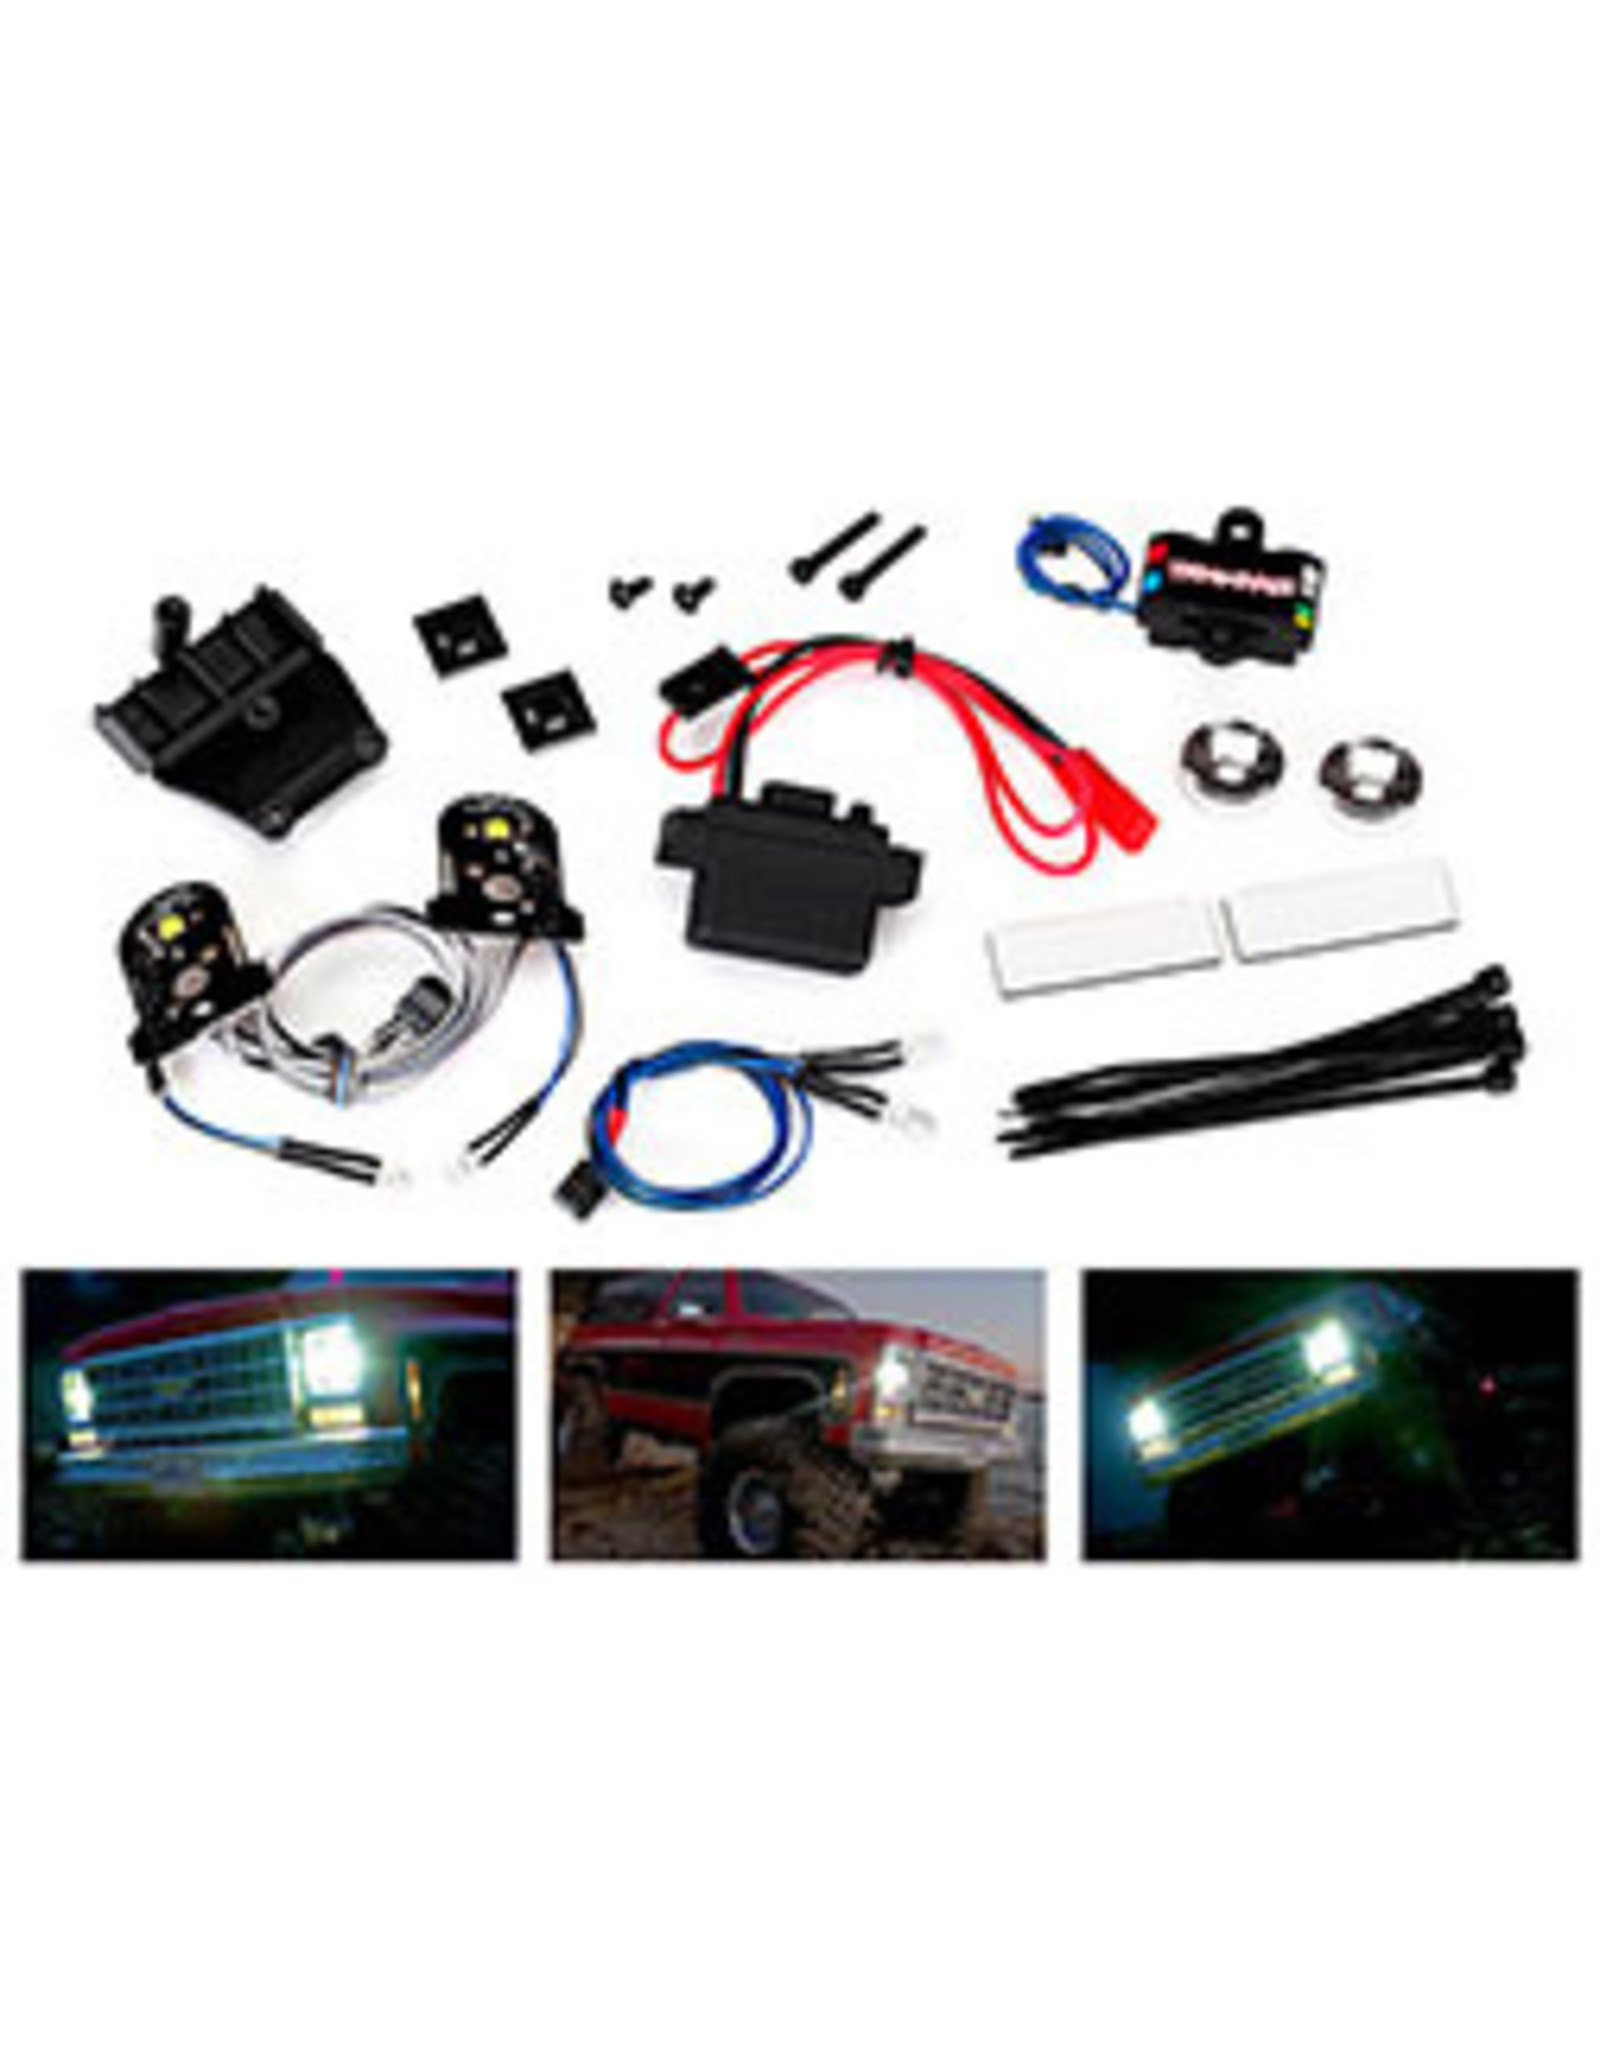 Traxxas LED light, complete/power supply (contain head/tail/side marker, distrib block/power supply) (fits #8130 body) (8038)